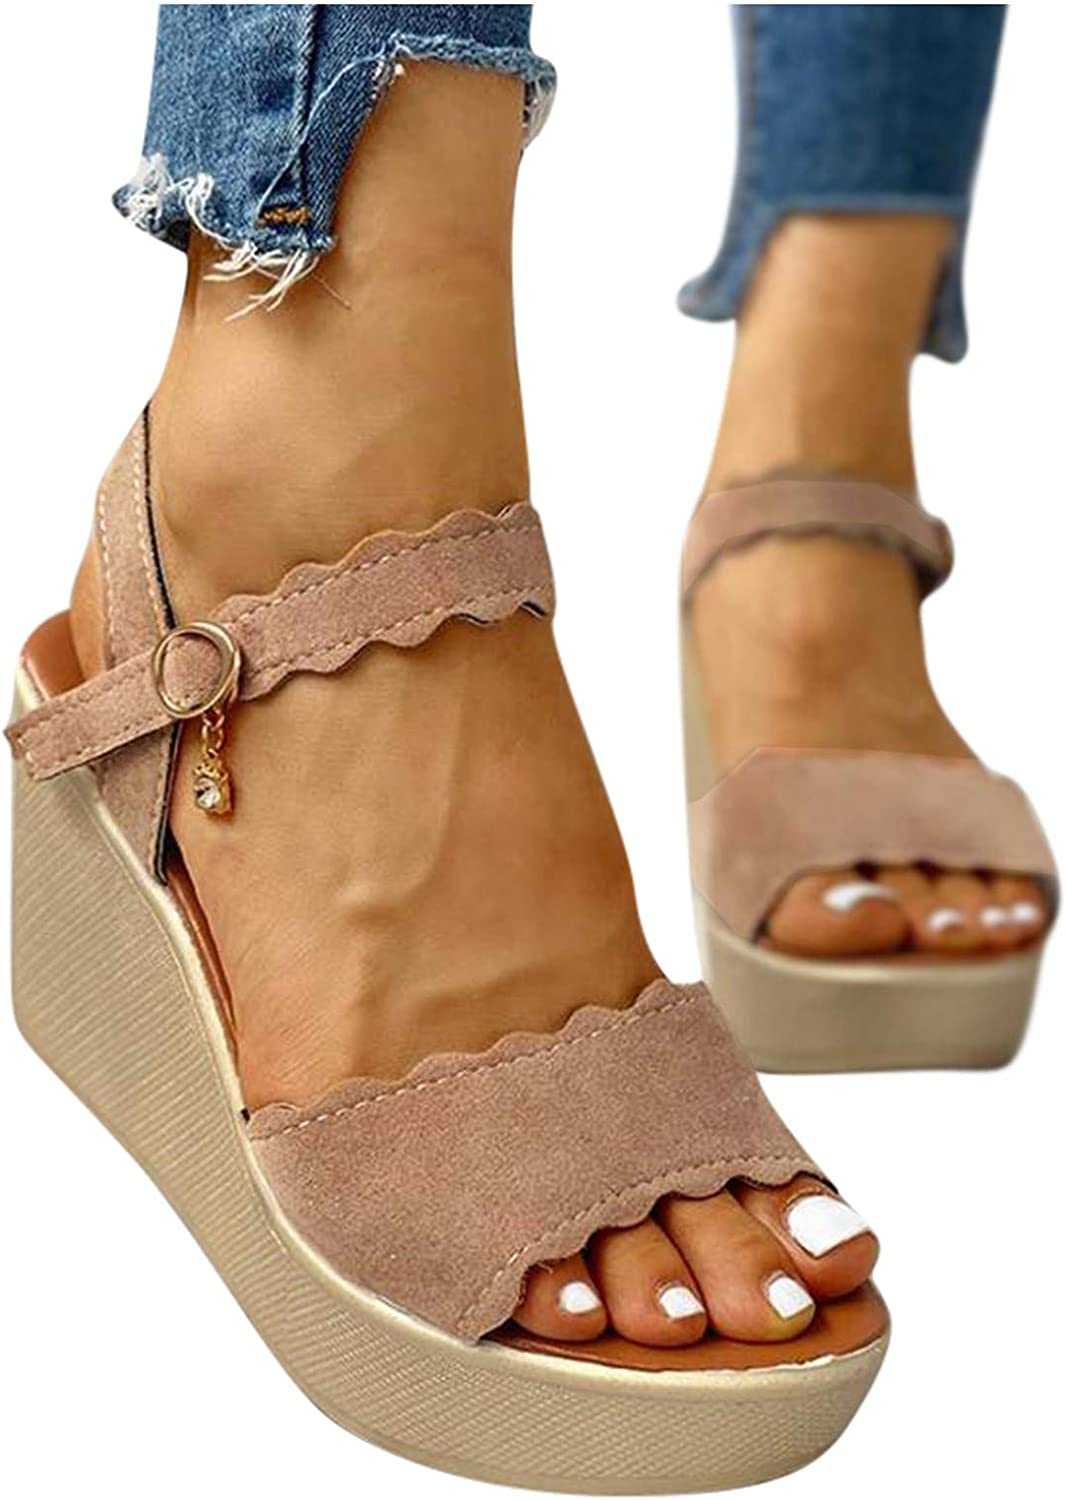 Hgndbloo High Platform Sandals for Open Max 80% OFF Toe Women Max 77% OFF Slippers Wedge